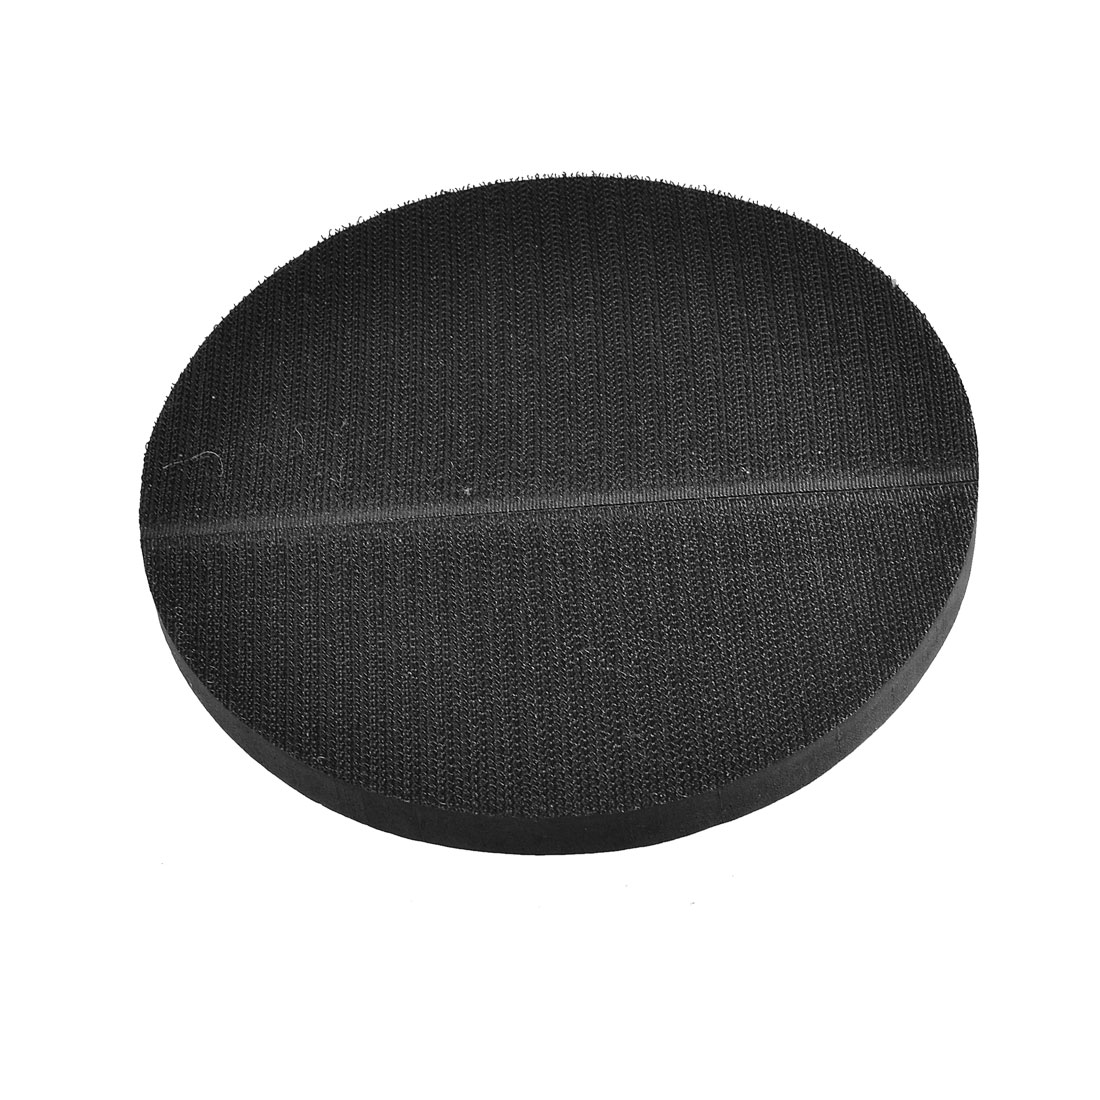 Car Auto 150mm x 12mm Black Foam Plastic Buffing Polishing Wheel